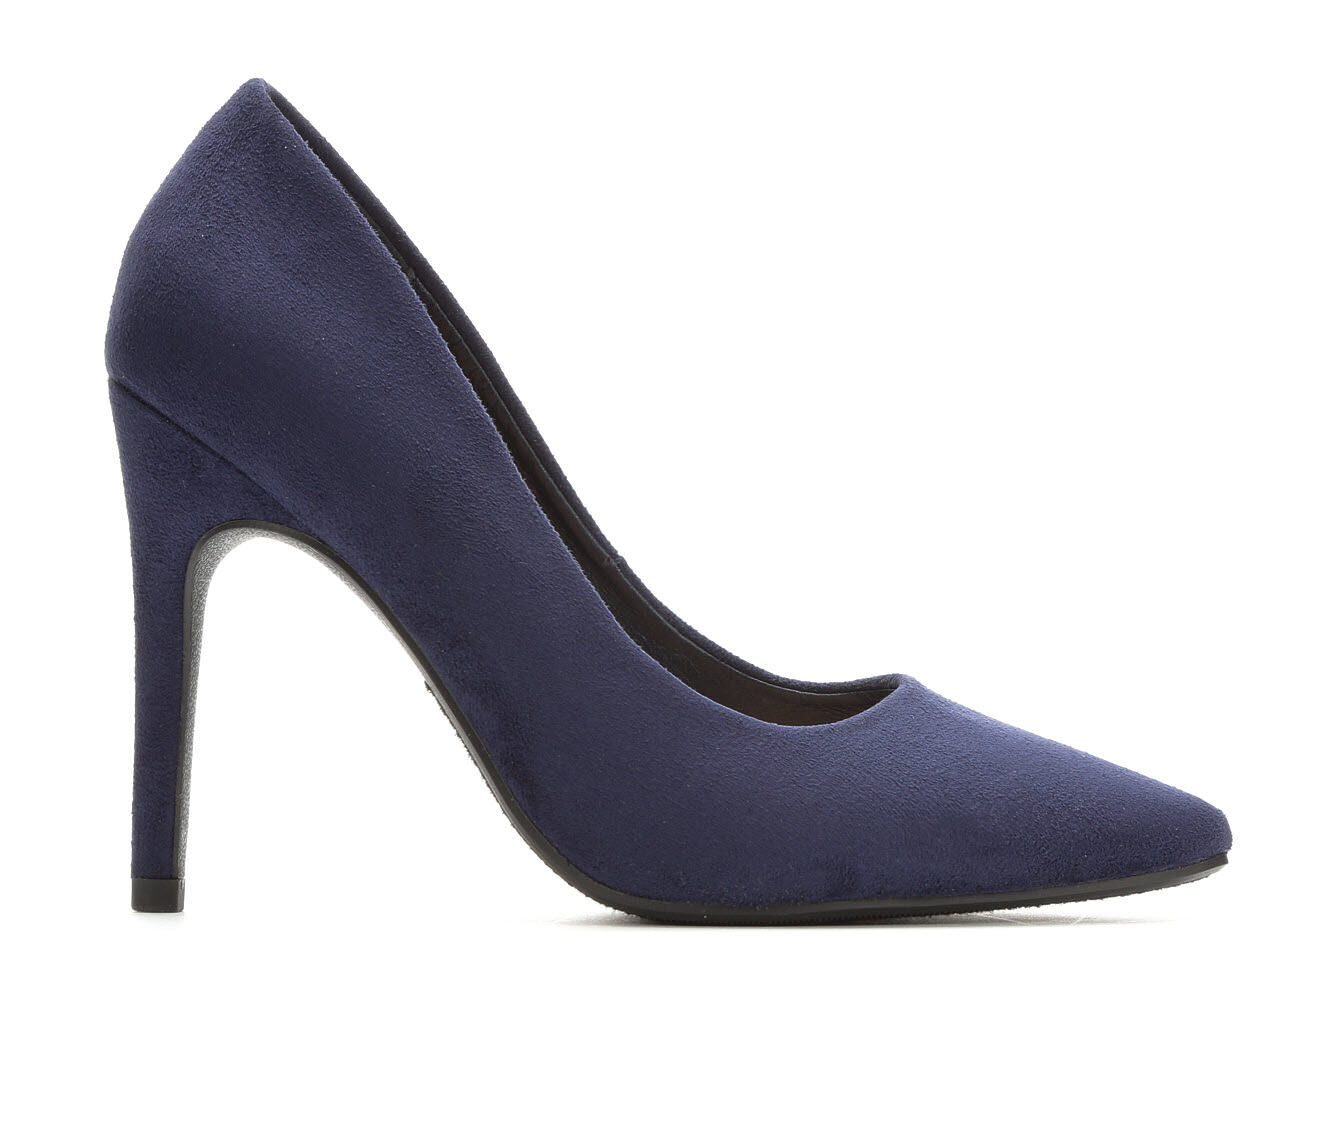 Welcomed Women's Y-Not Euclid Pumps New Navy Micro